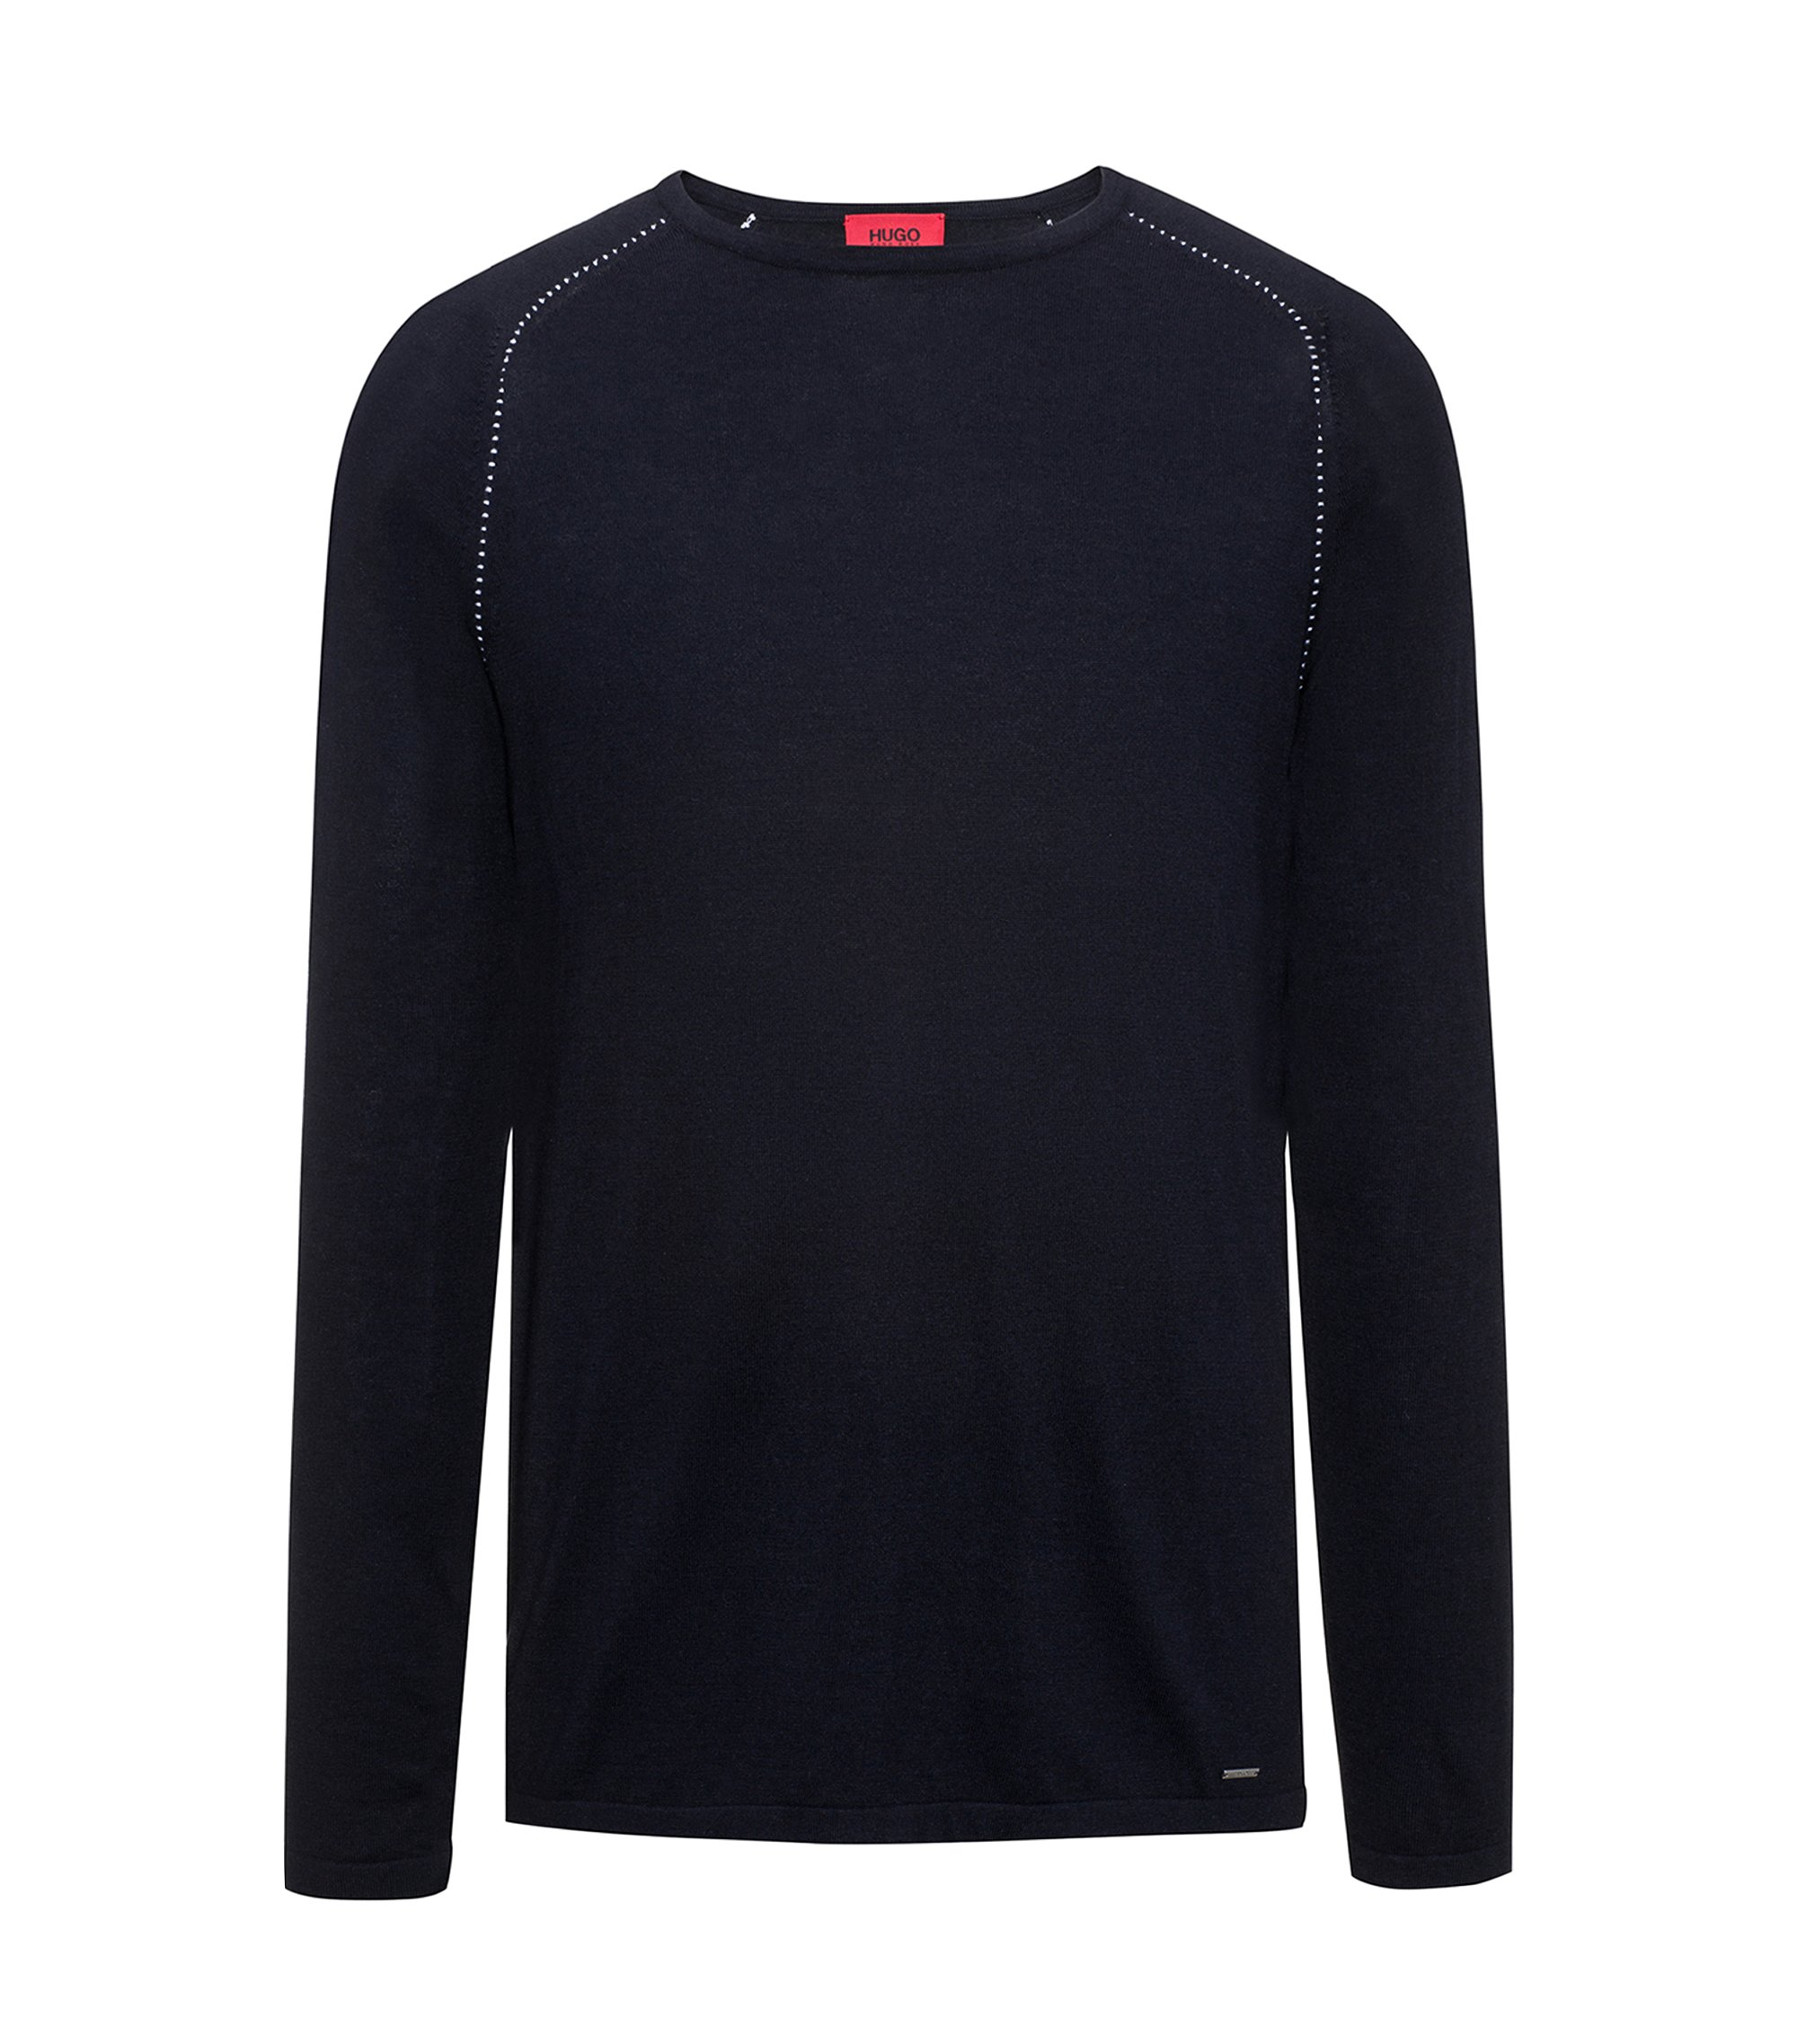 Cotton Blend Raglan-Stitched Sweater | Sevon, Dark Blue